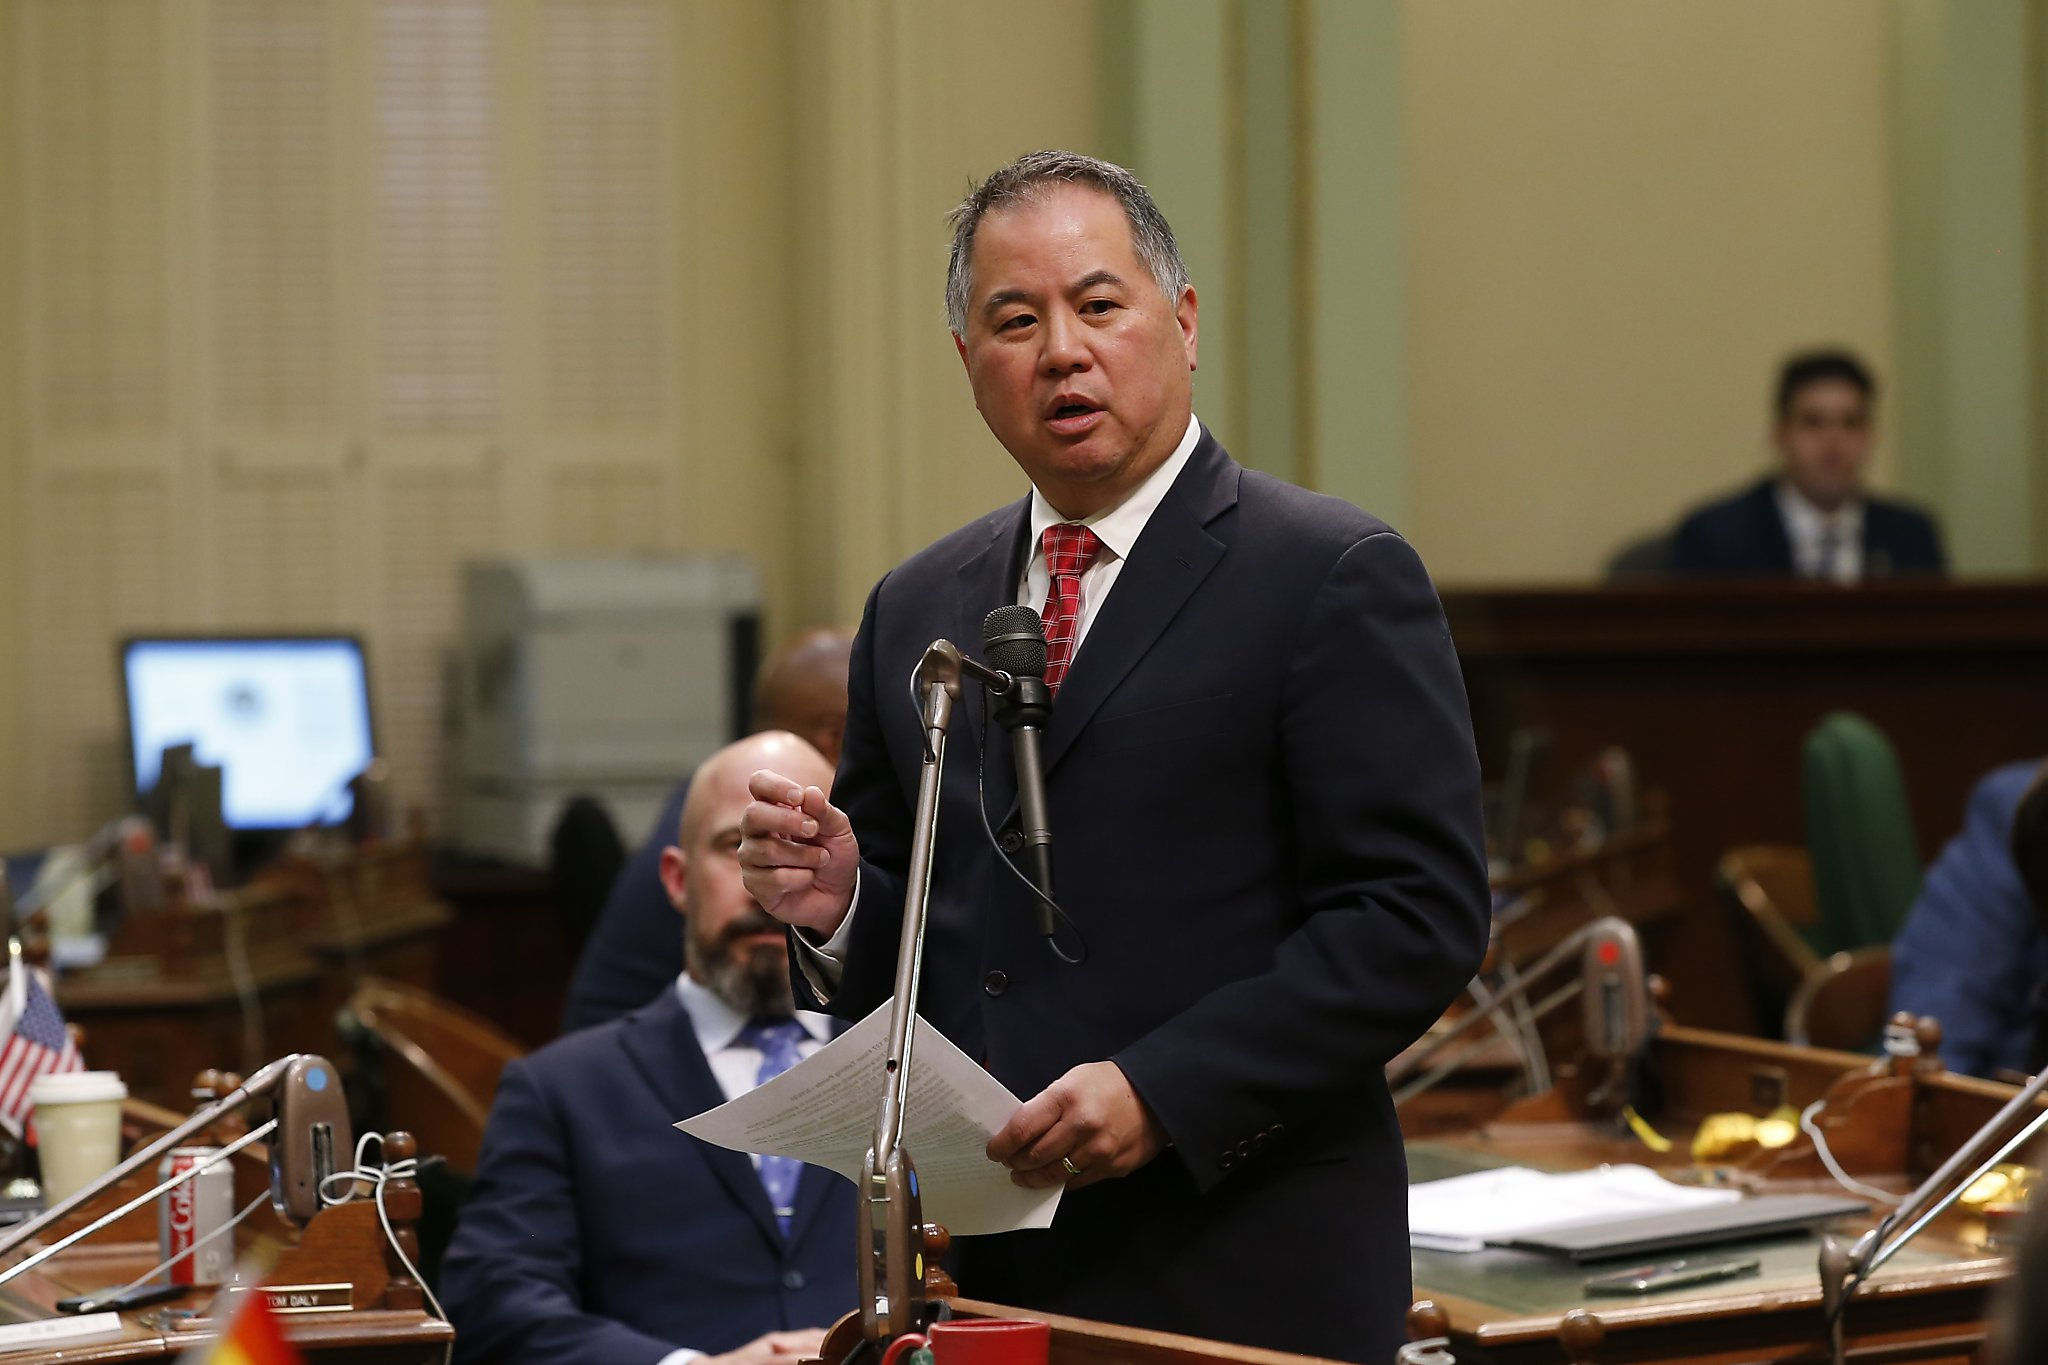 www.sfchronicle.com: Lawmakers Ting, Chiu hearing from Chinese Americans about affirmative action measure